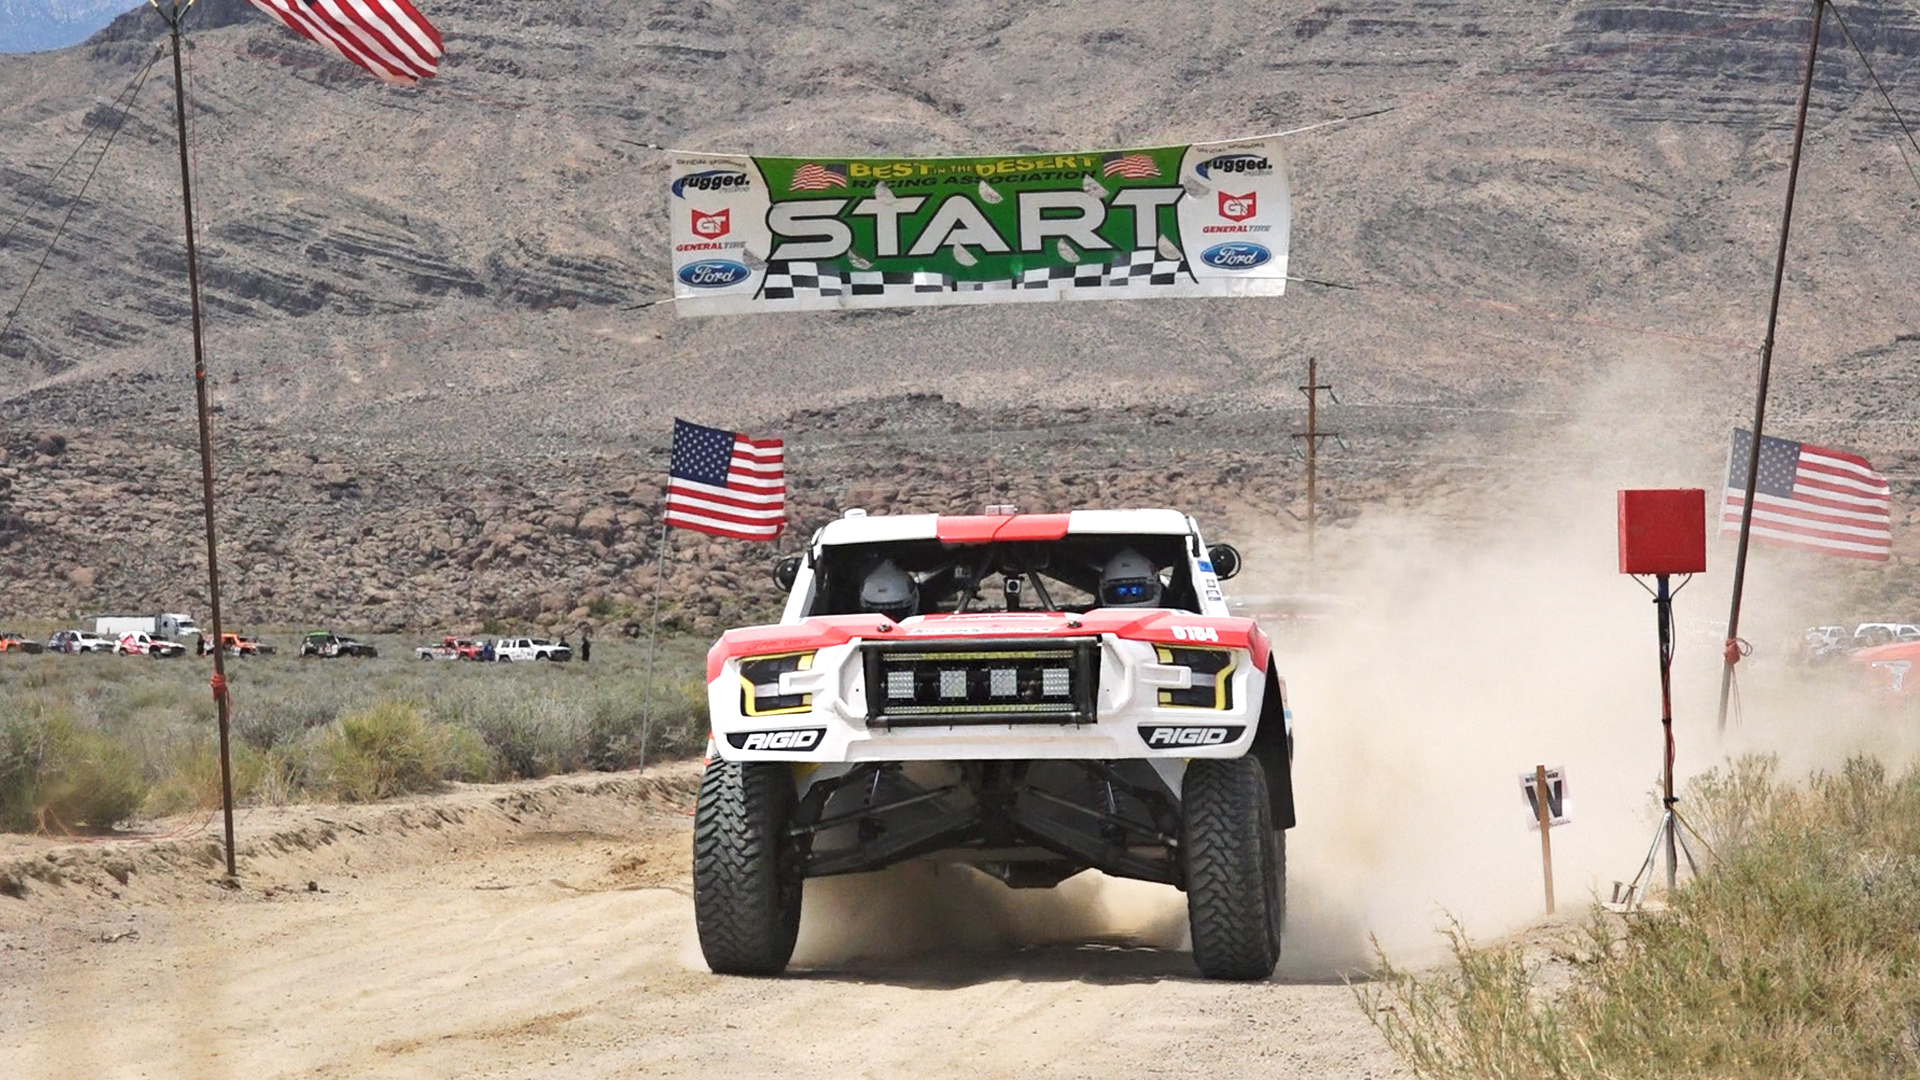 OTSFF OFF-ROAD HAMMERS ITS WAY THROUGH FROM VEGAS TO RENO